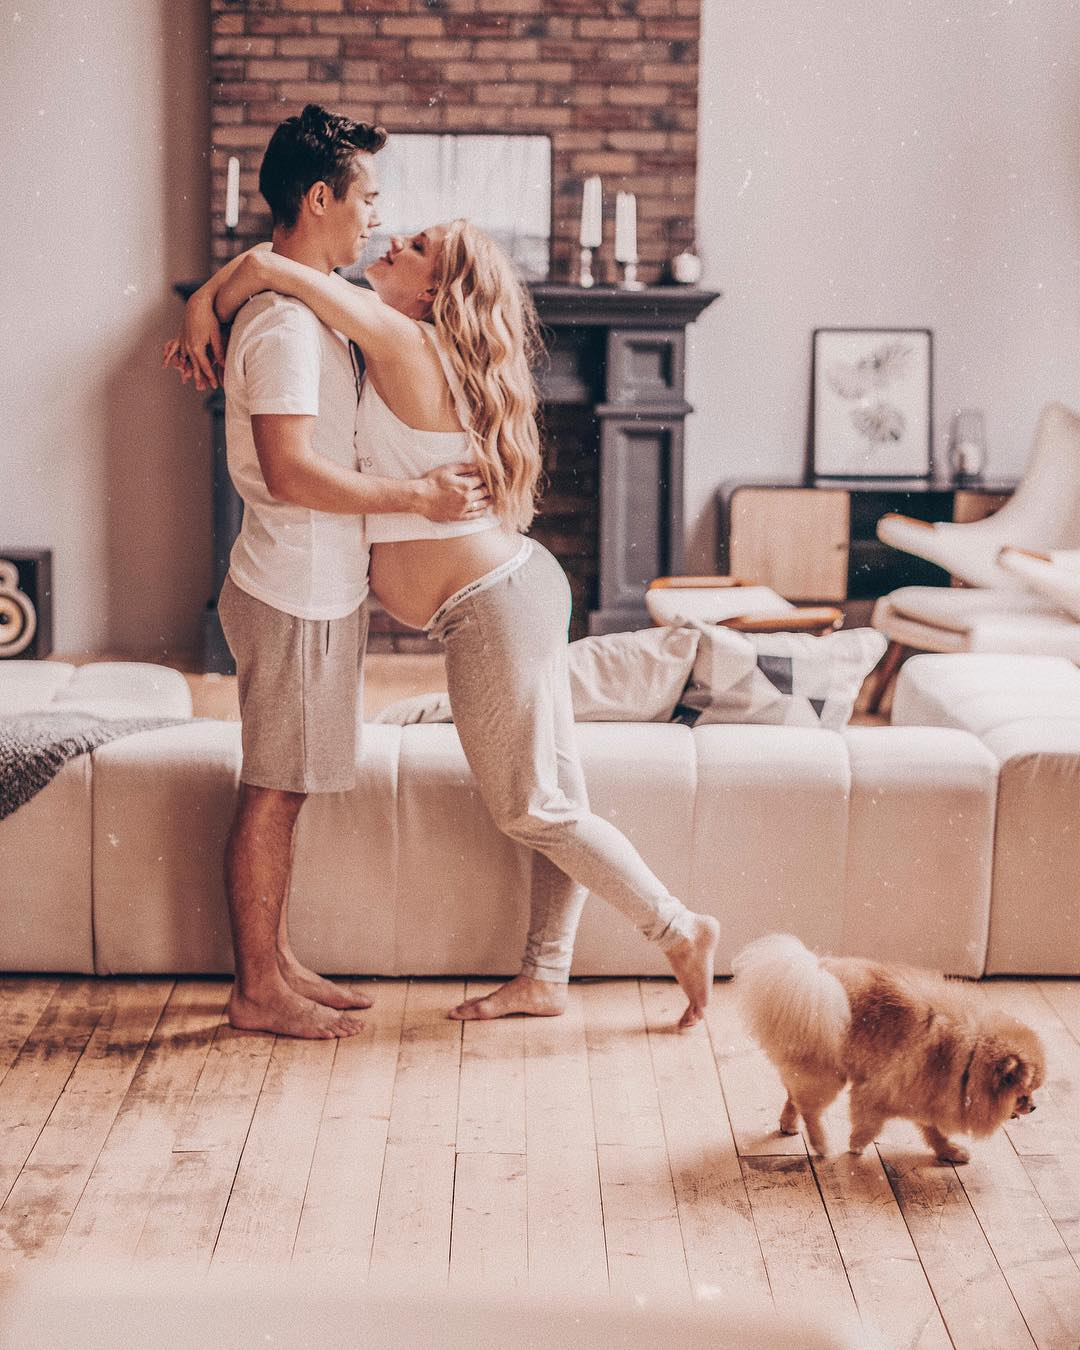 Heart touching pictures that prove pregnancy is a beautiful journey